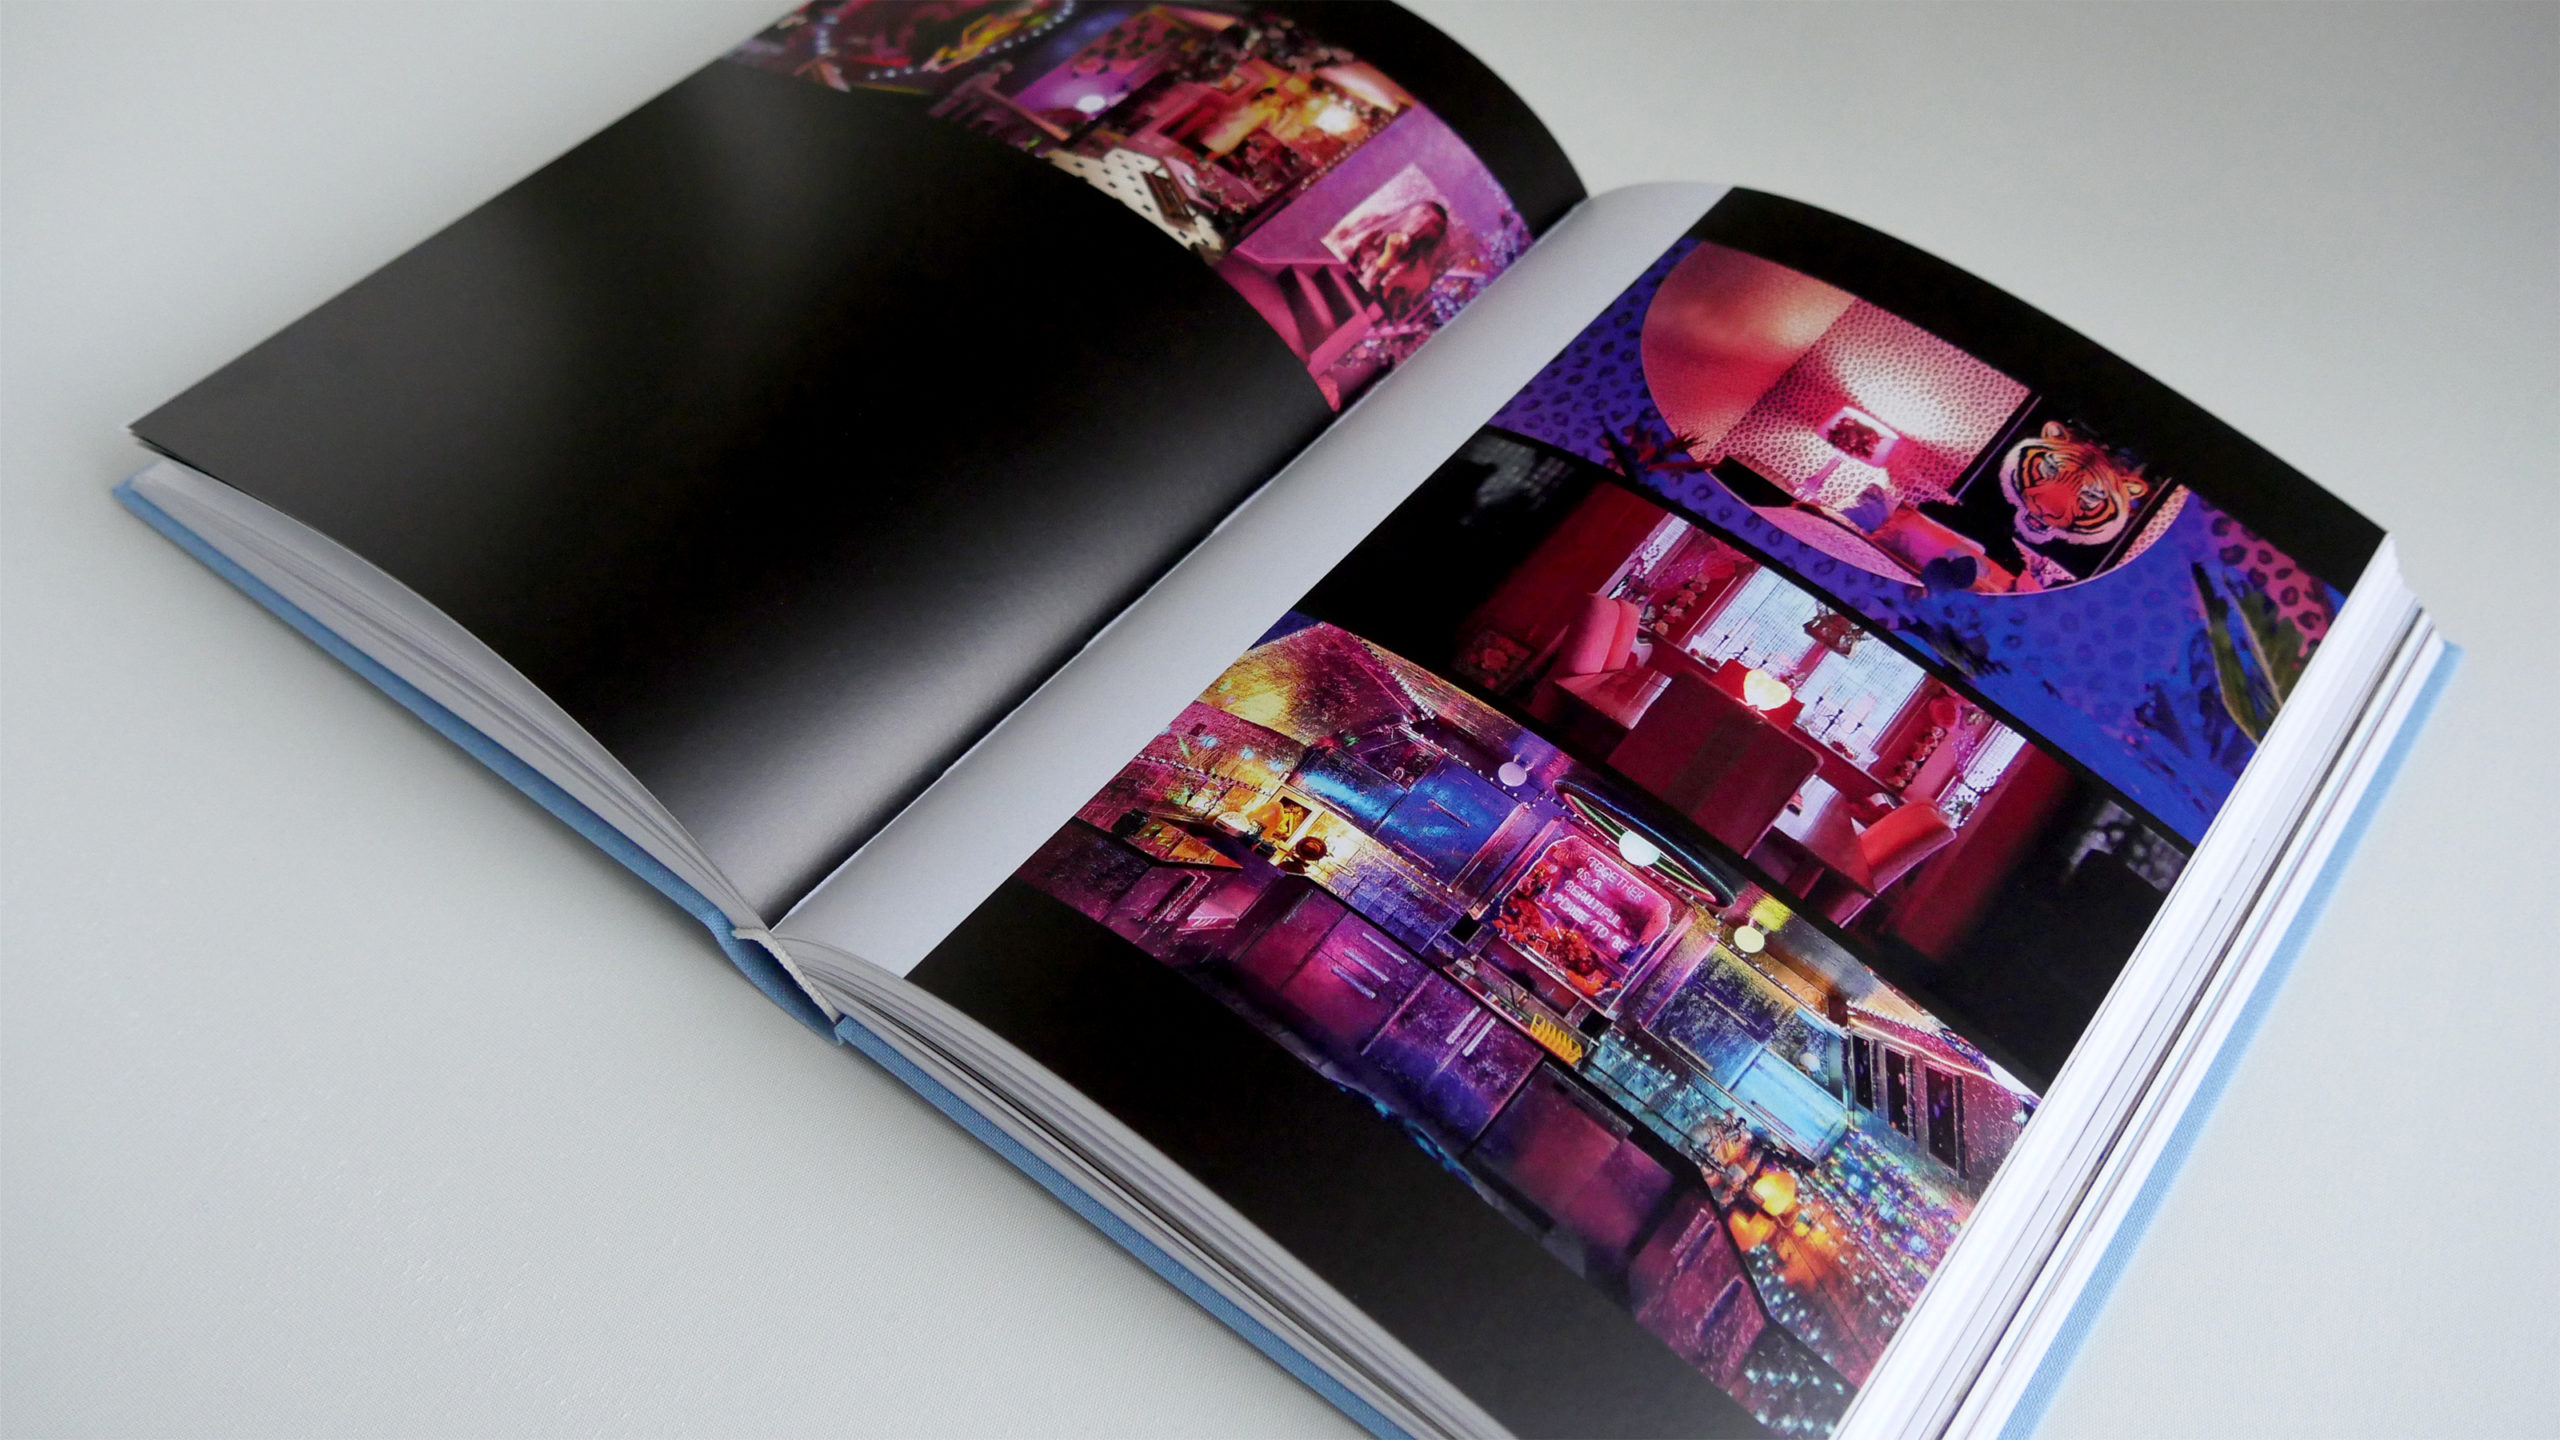 Uchronia book opened to a colorful collaghe of photos